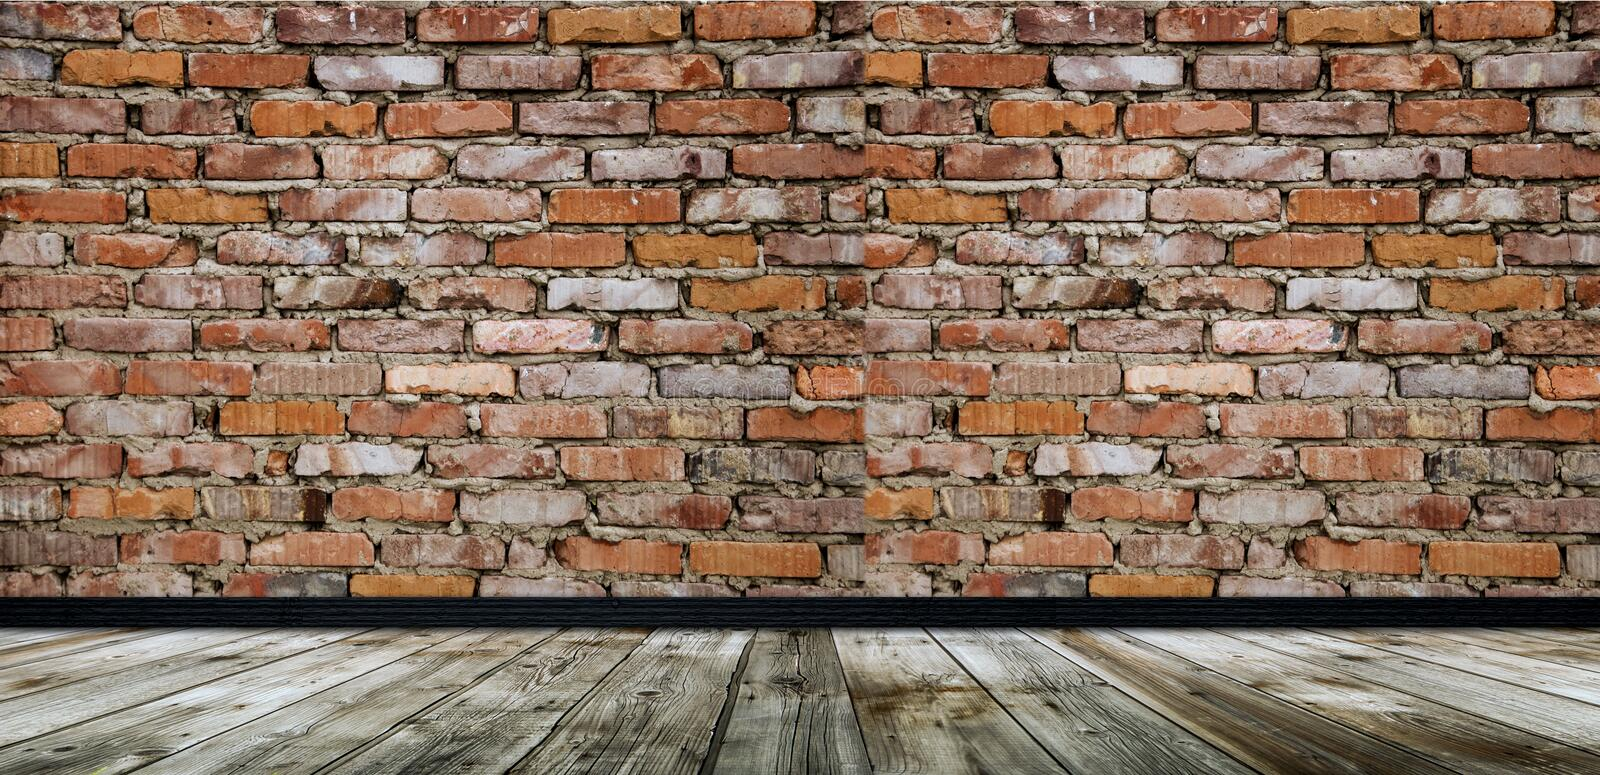 Empty room with red brick wall and wooden floor royalty free stock image